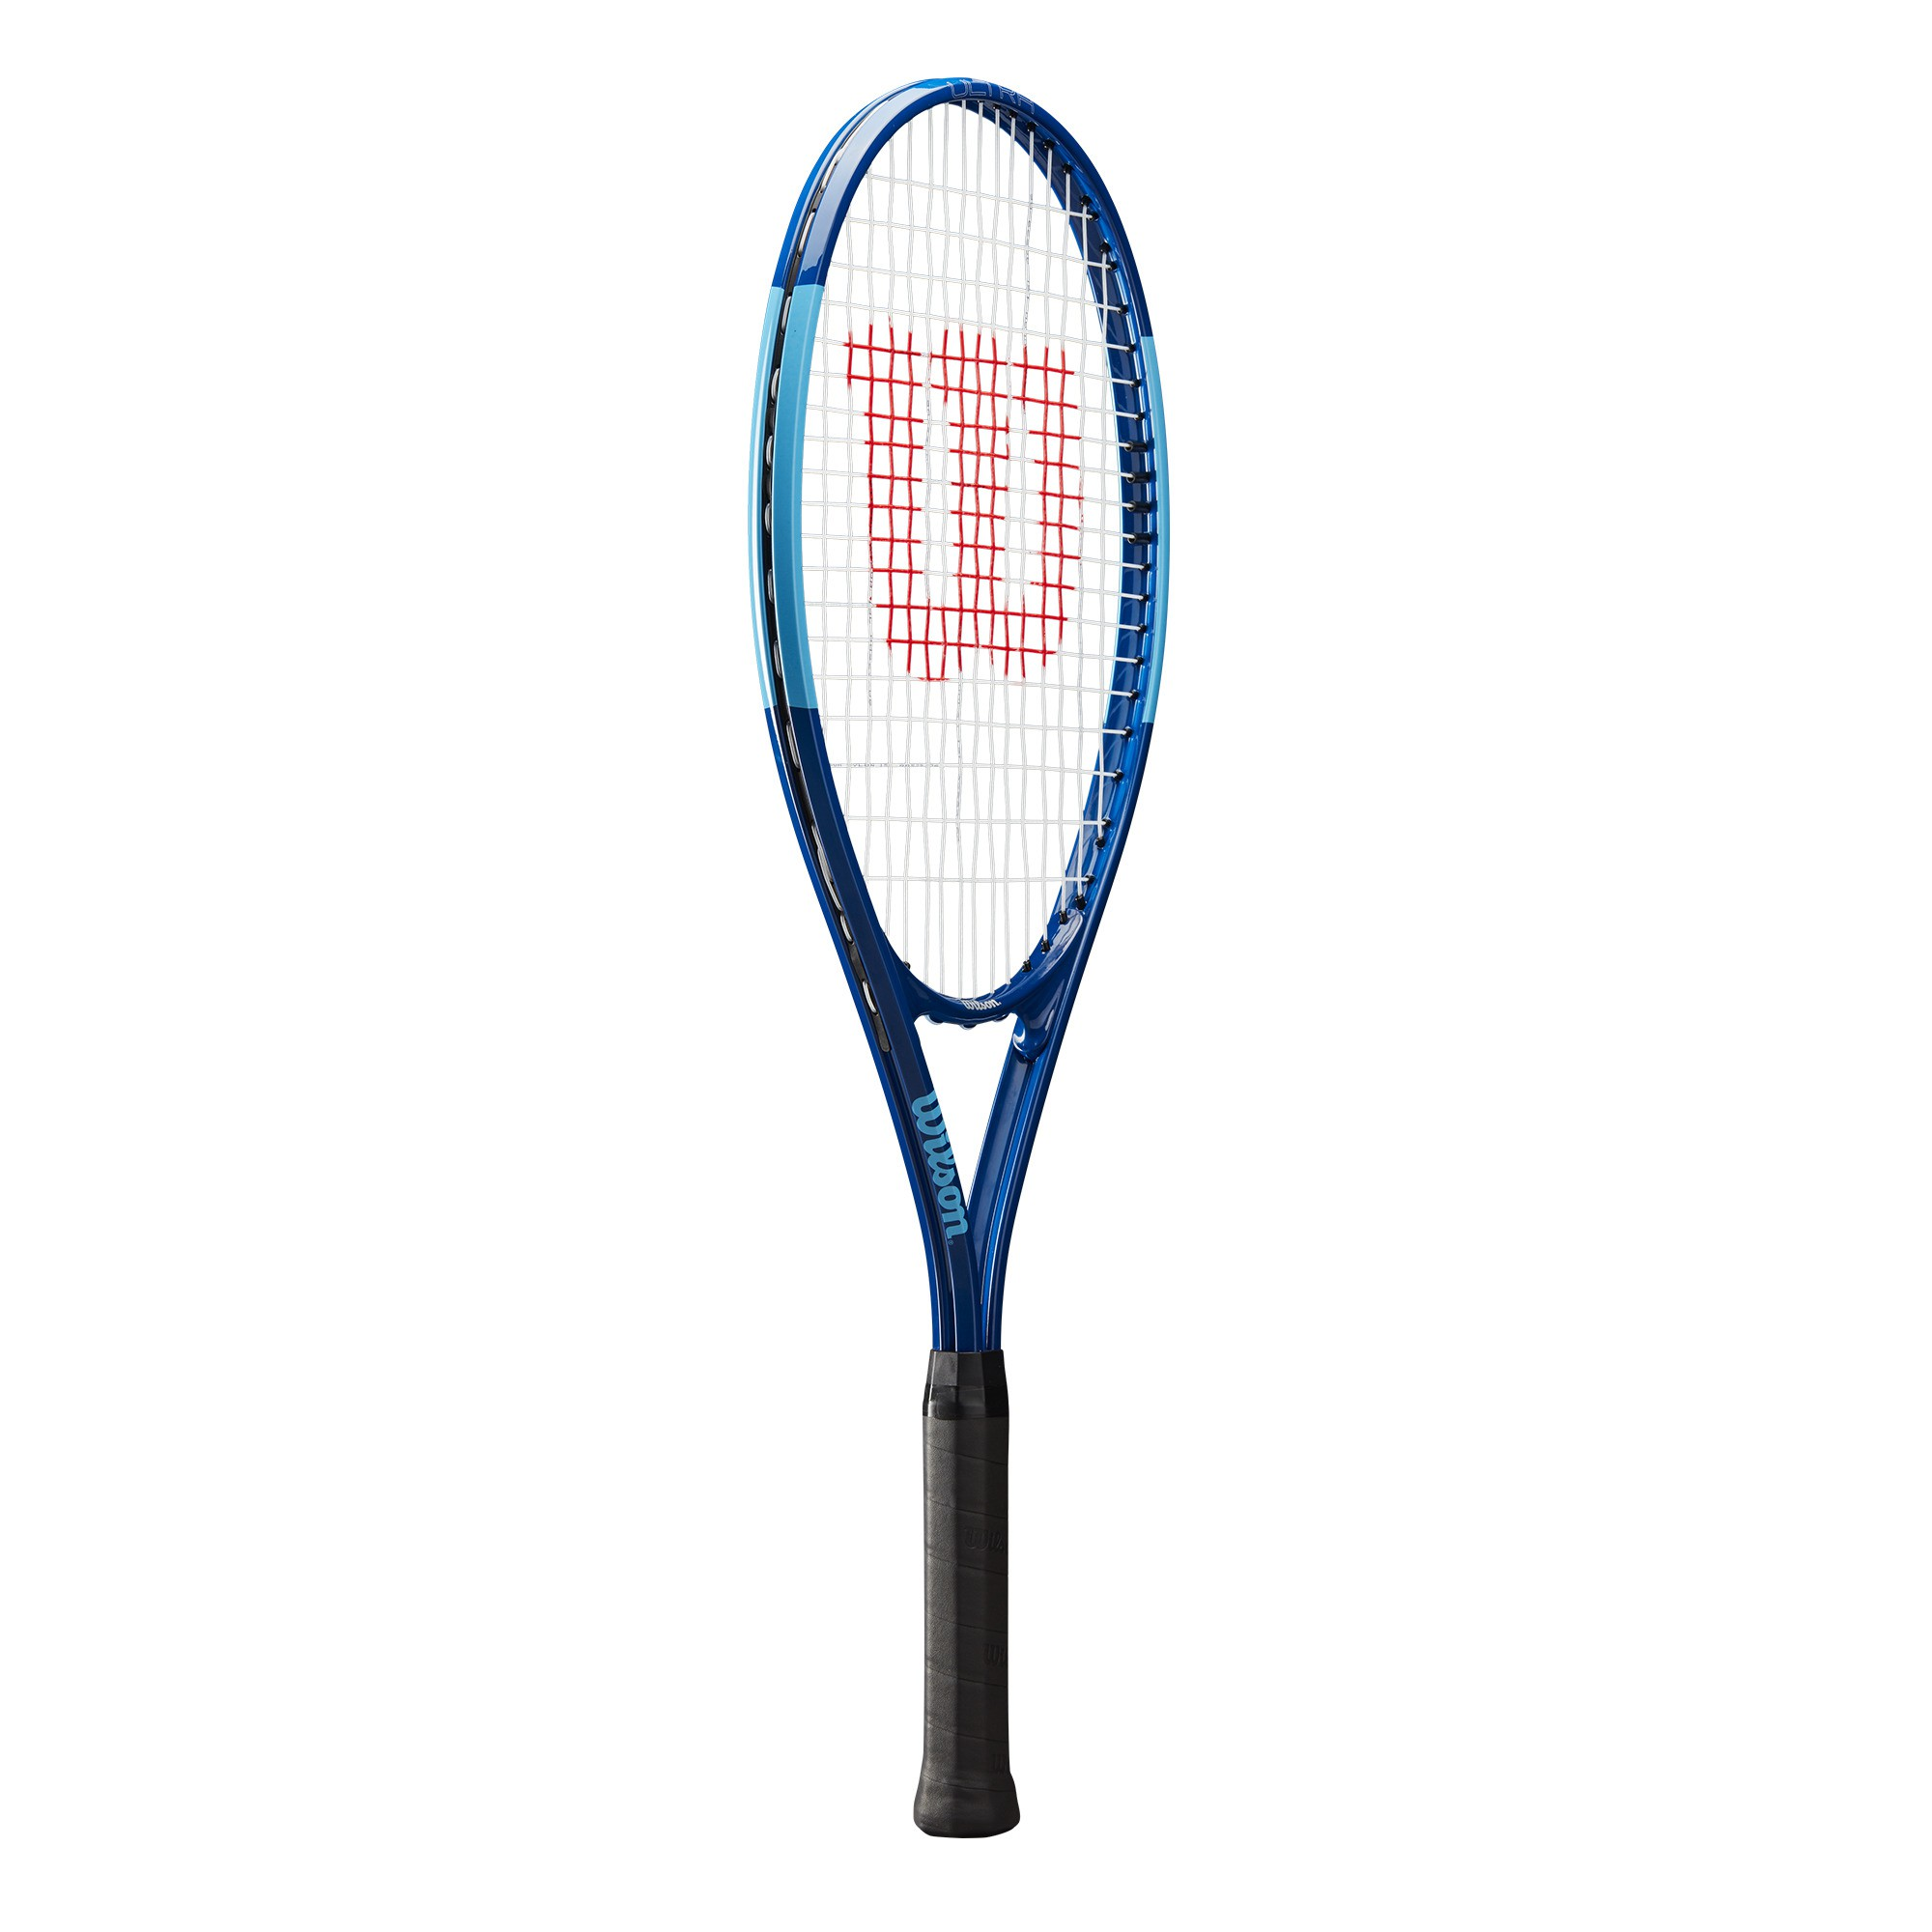 Raquete de Tênis Wilson Ultra Power XL 112